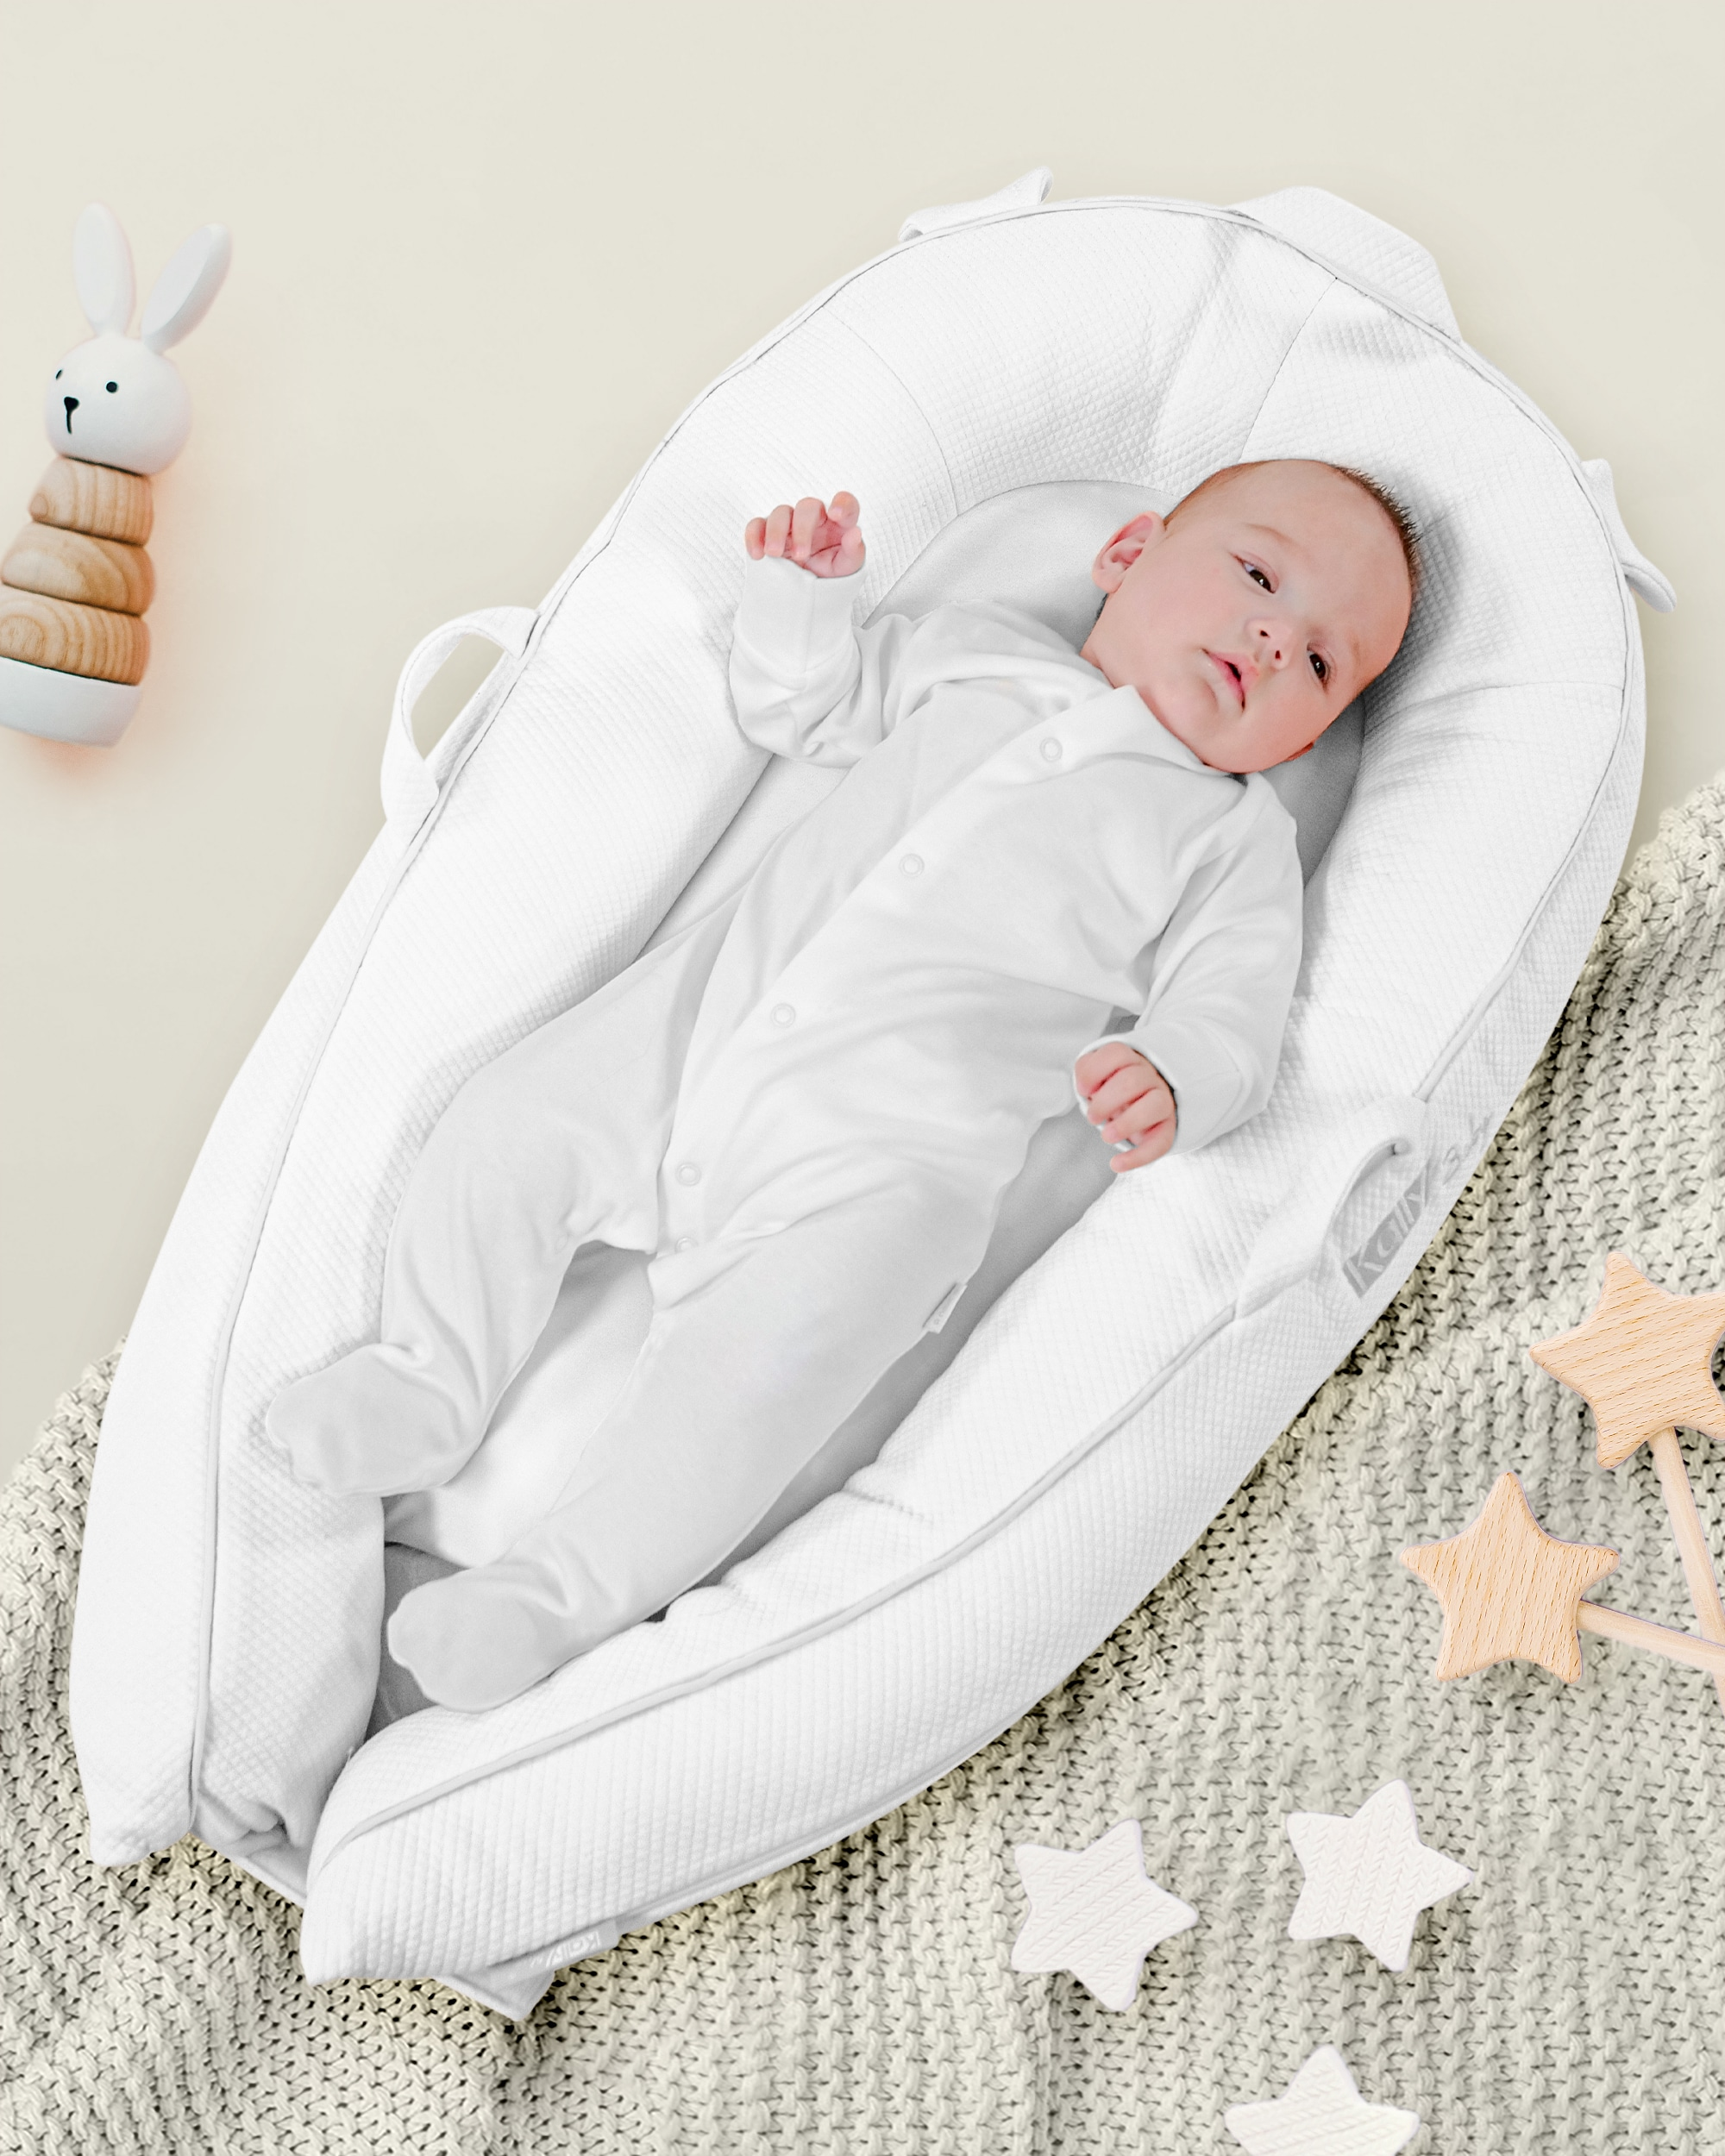 Kally Baby Nest Spare Cover